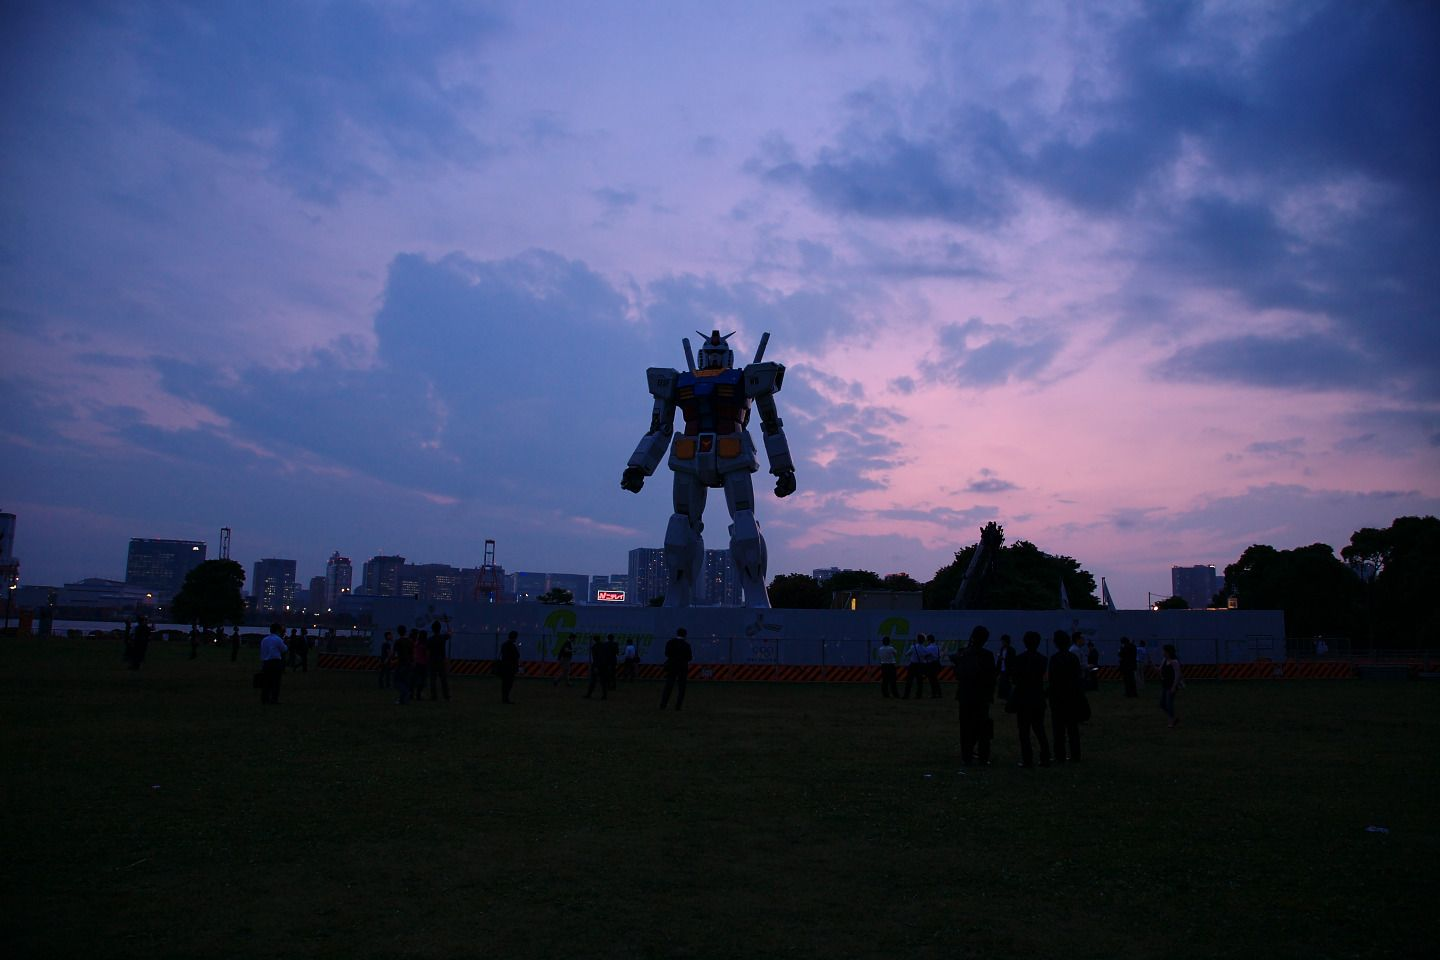 giant robot statues in japan - polycount